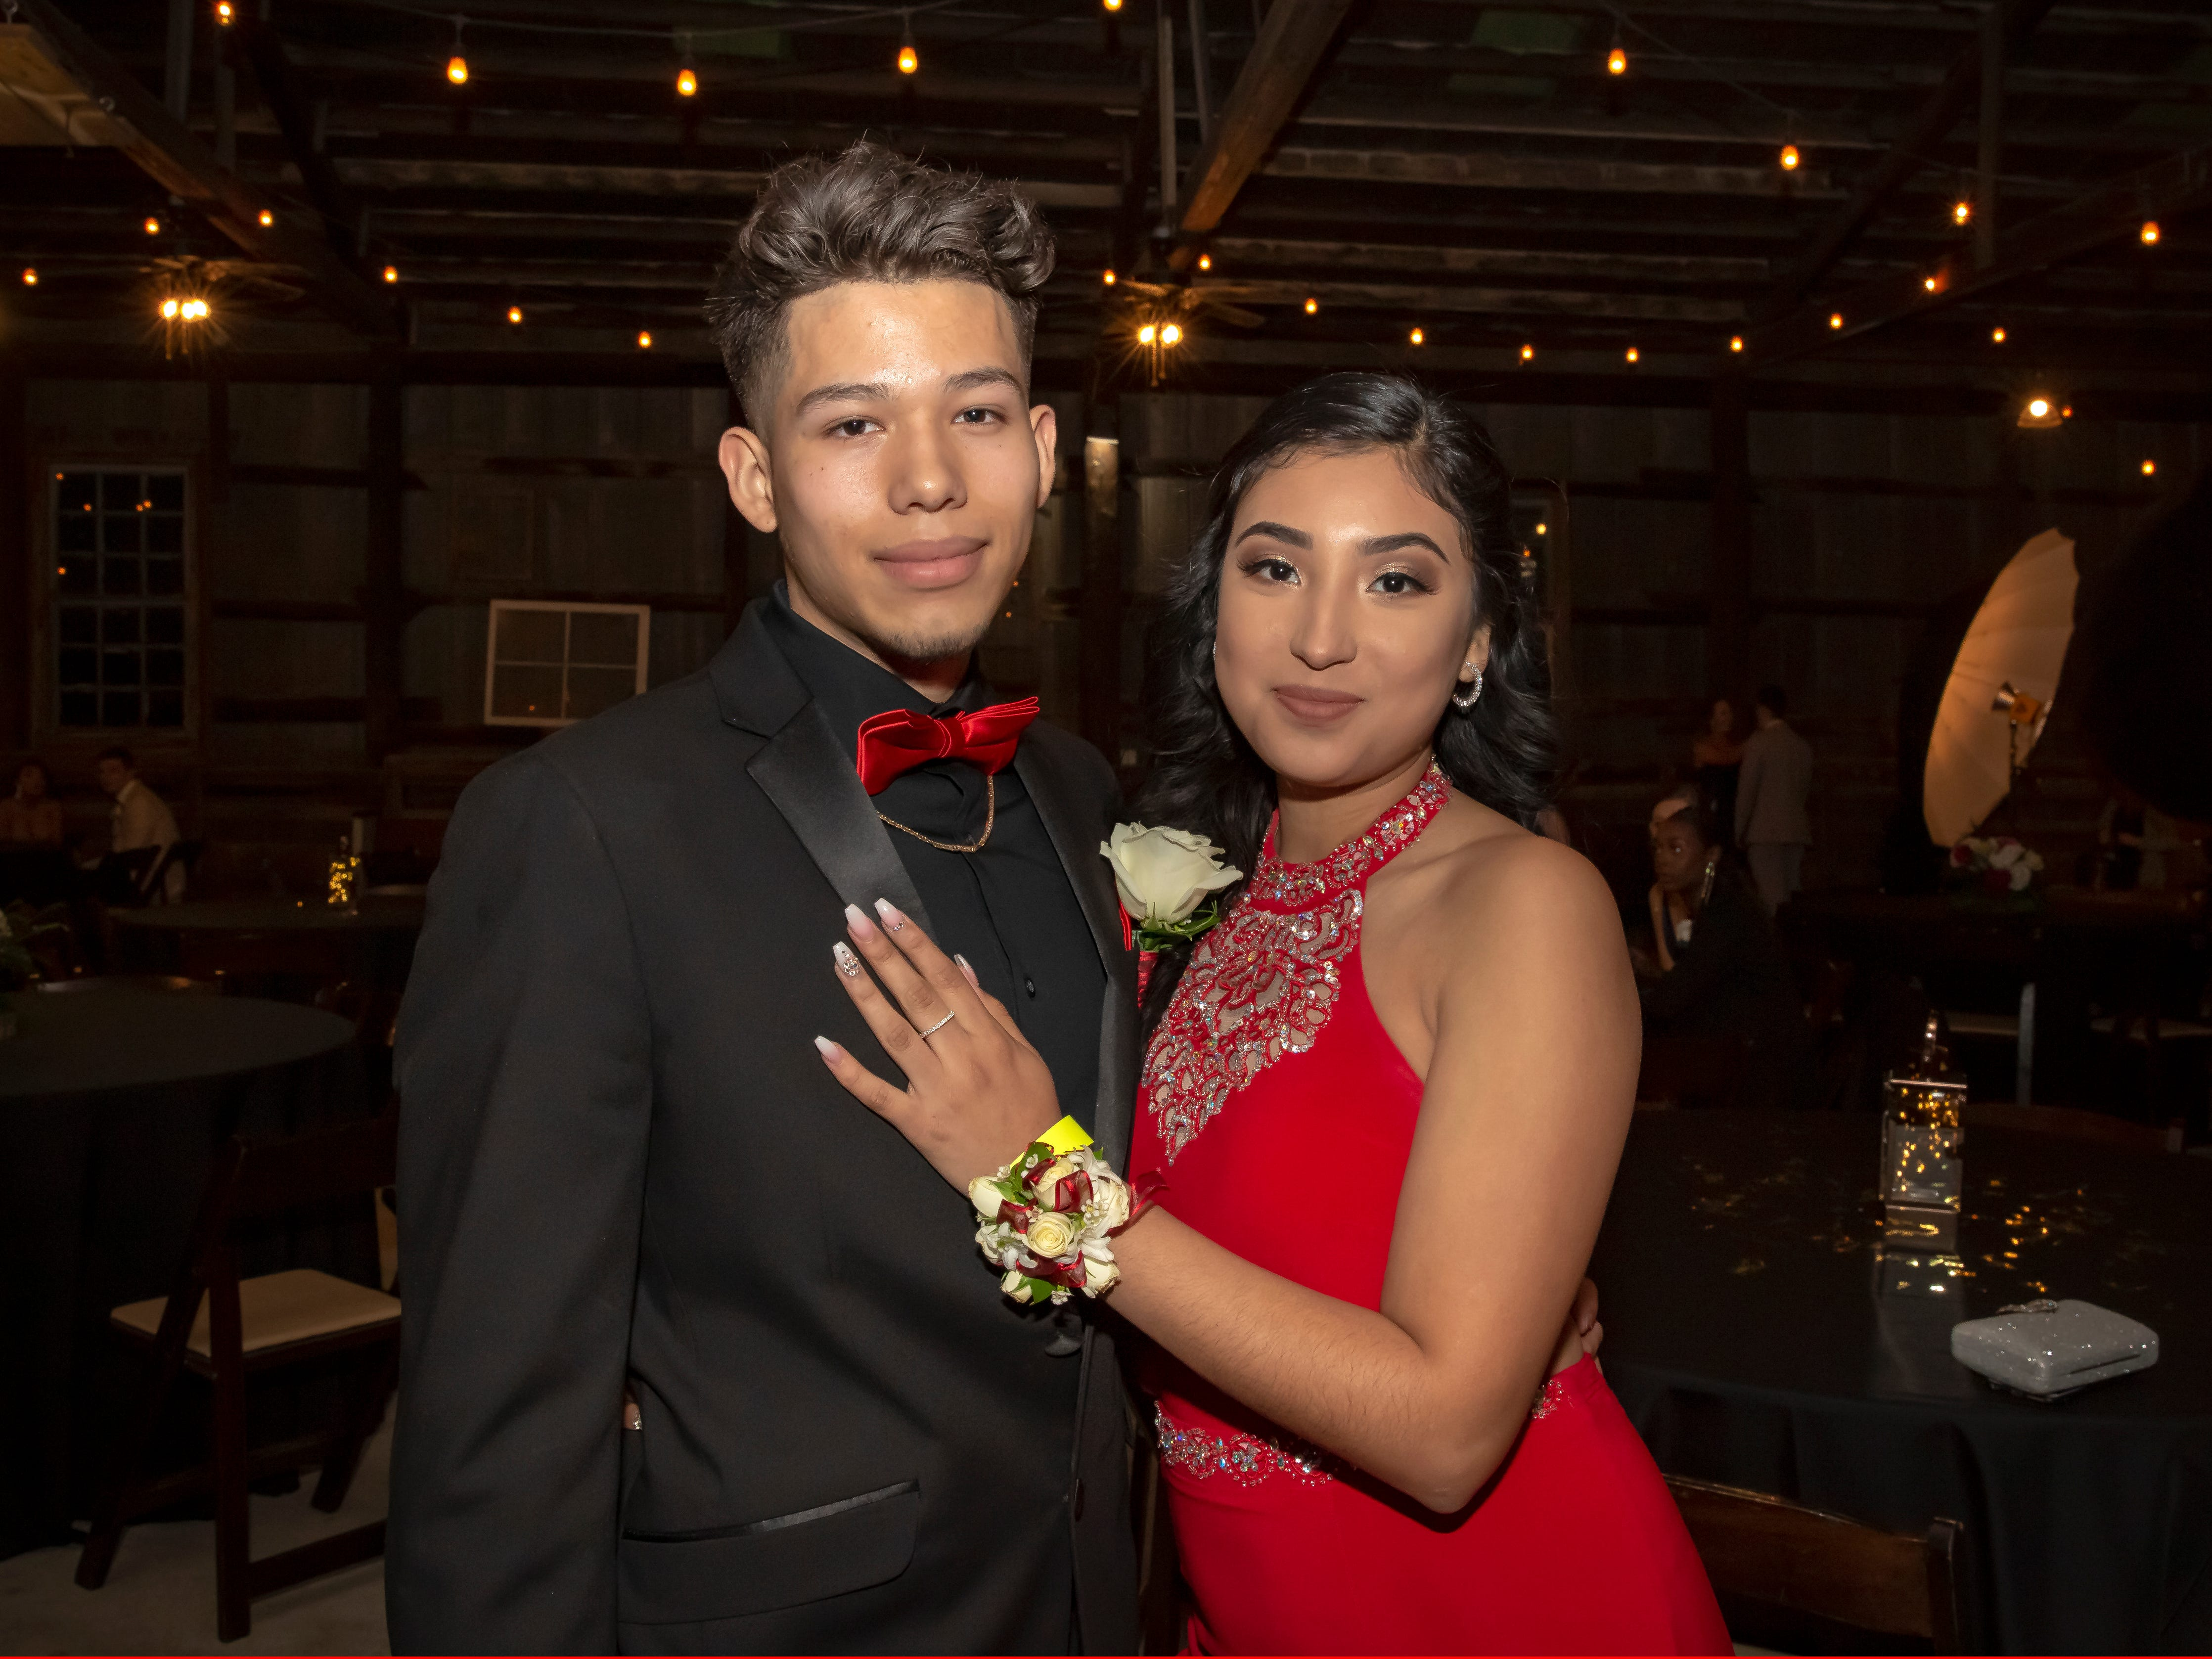 Omar Rivera and Kimberly Tapia at the Smyrna High School prom held at the Grove, Friday, April 26, 2019.